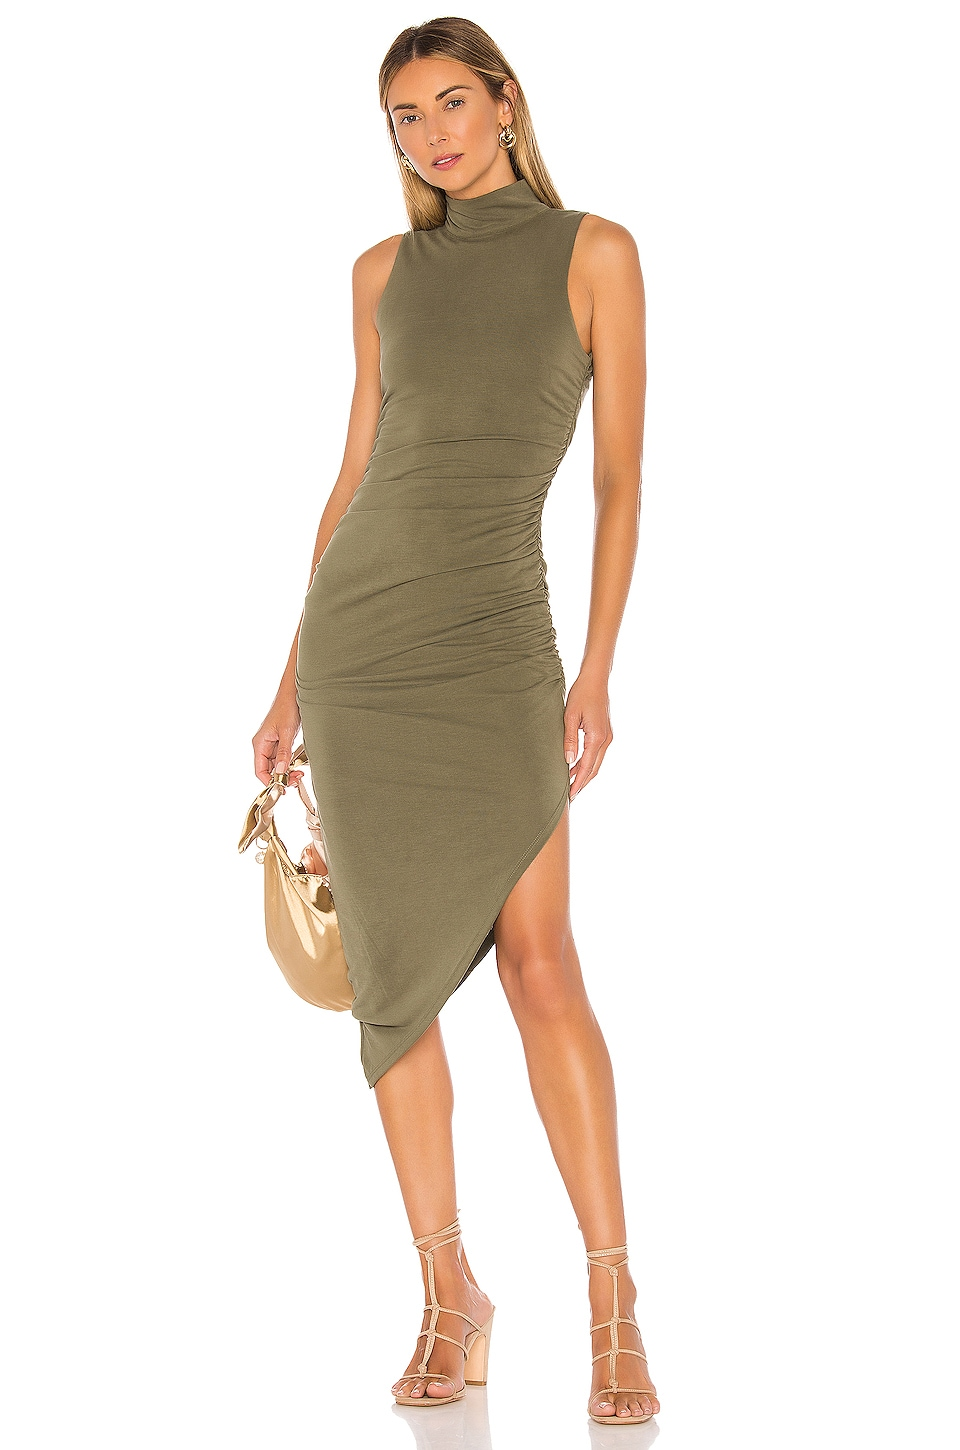 House of Harlow 1960 X REVOLVE Violet Dress in Olive Green